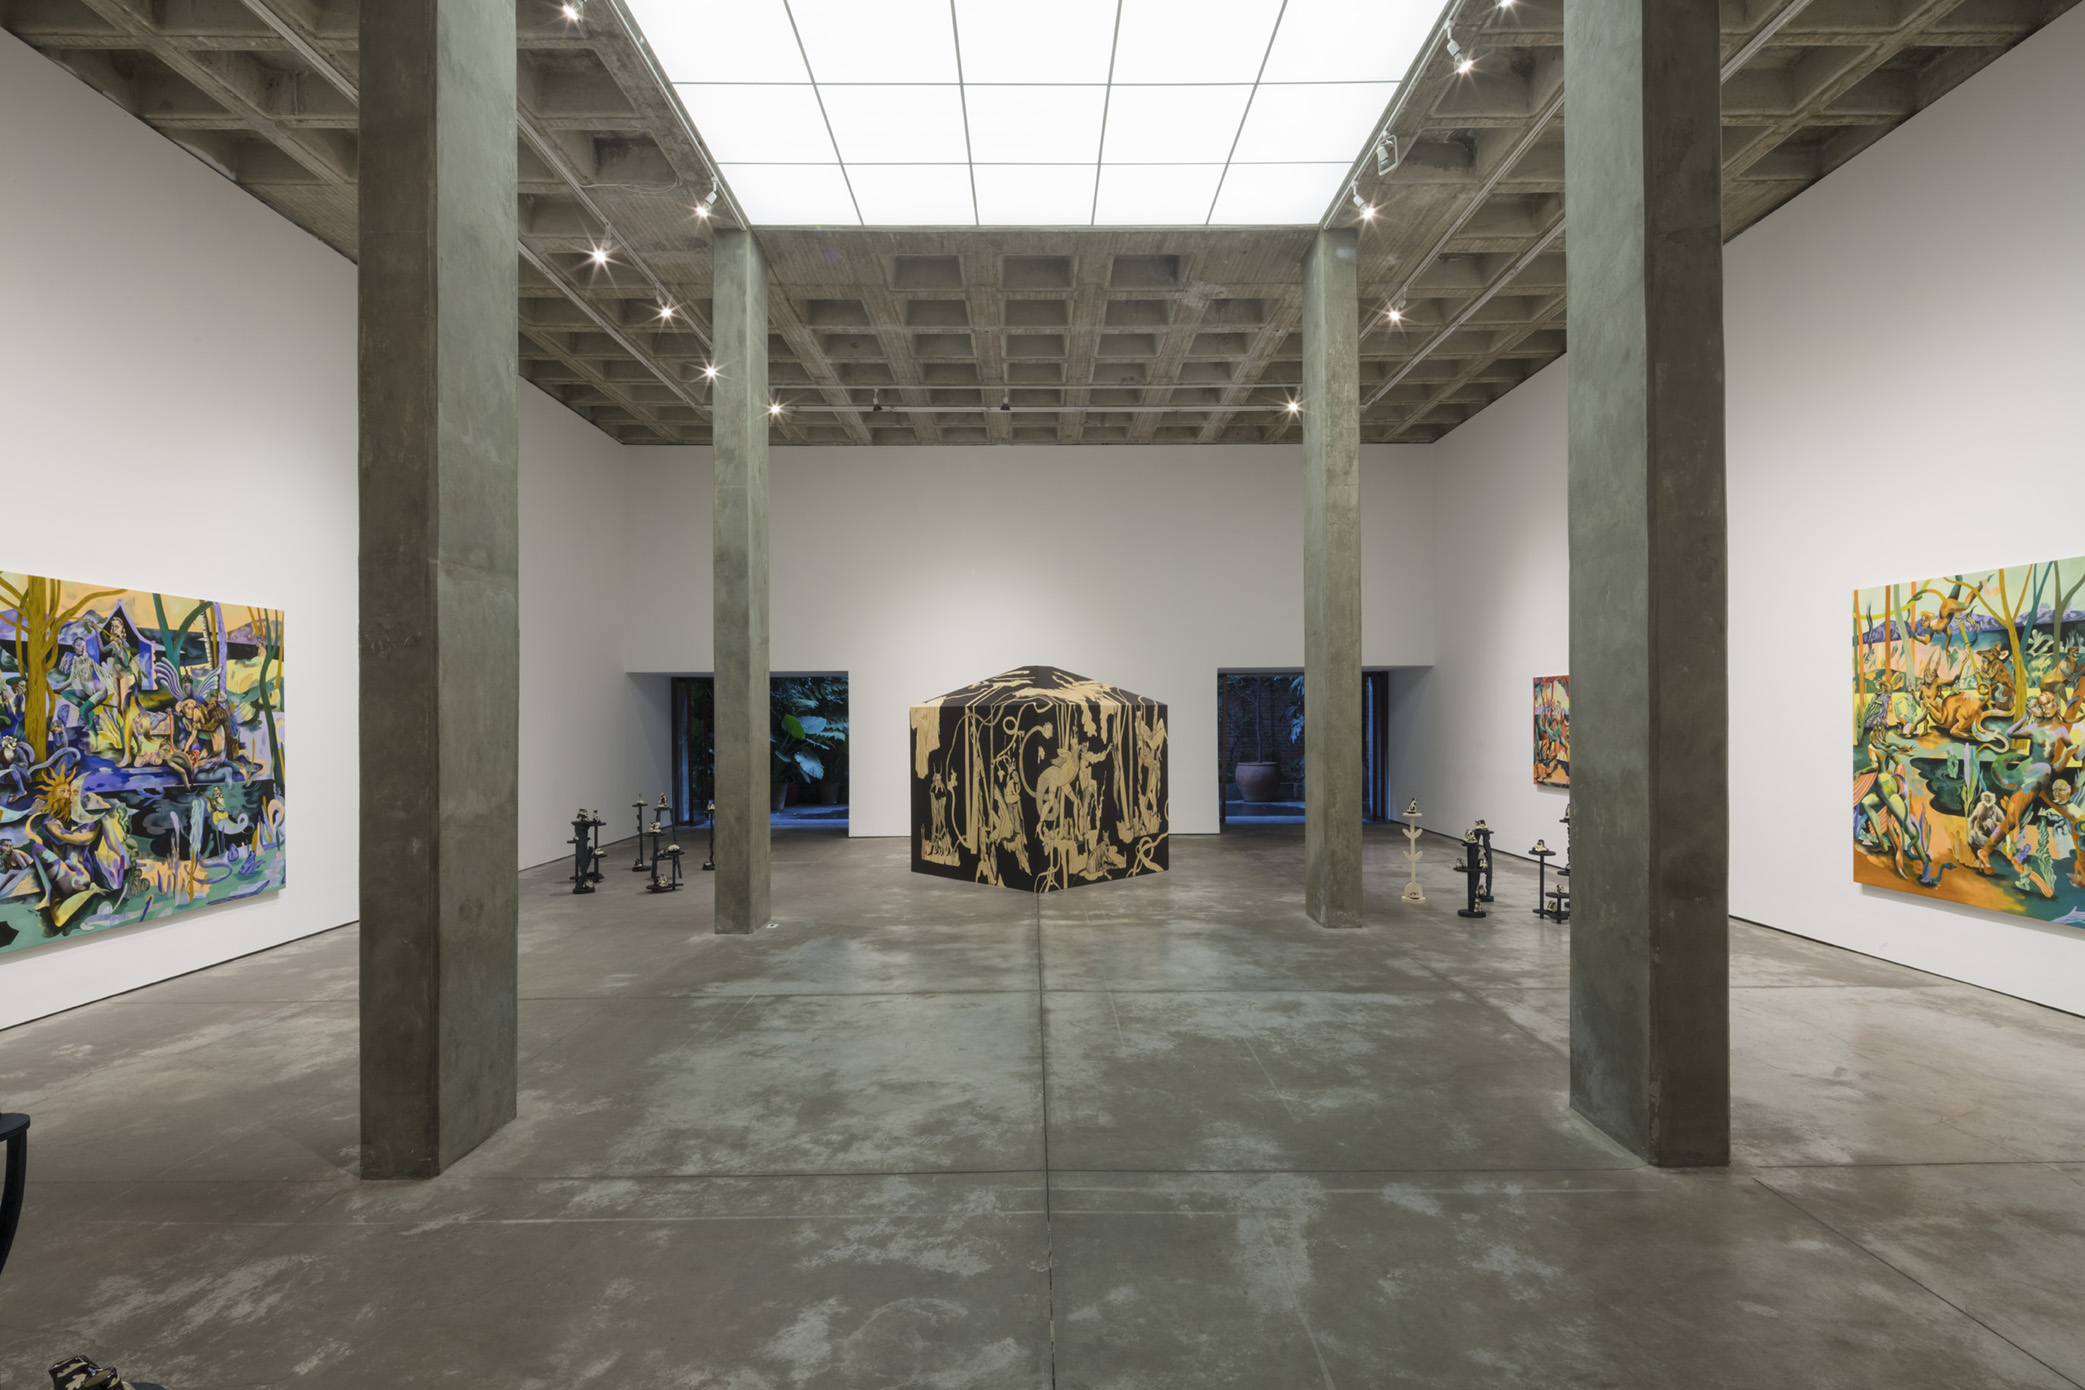 Jessie Makinson,  Tender Trick , Installation view at Galería OMR, Mexico City, MX, June 20 - August 17, 2019